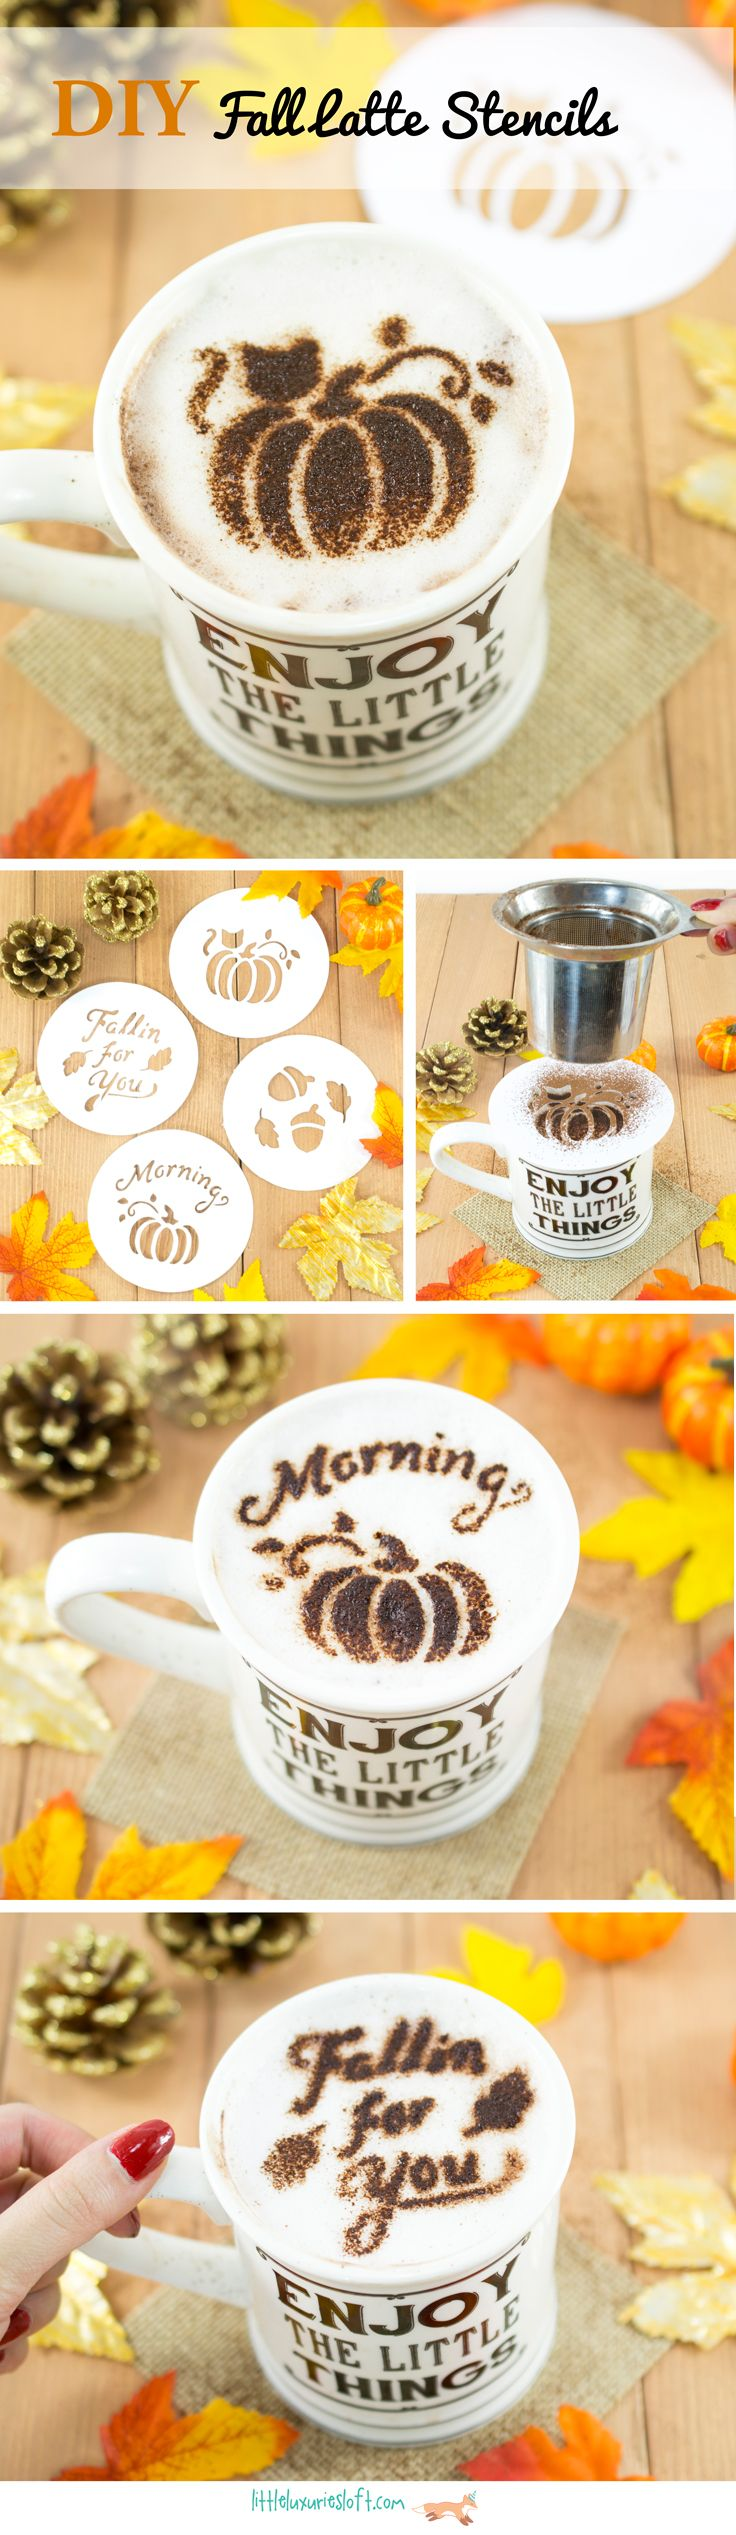 Make these festive fall latte stencils! Free SVG and JPEG files available so you can make them with a Silhouette Cameo or by hand! Full Tutorial on the Little Luxuries Loft Blog